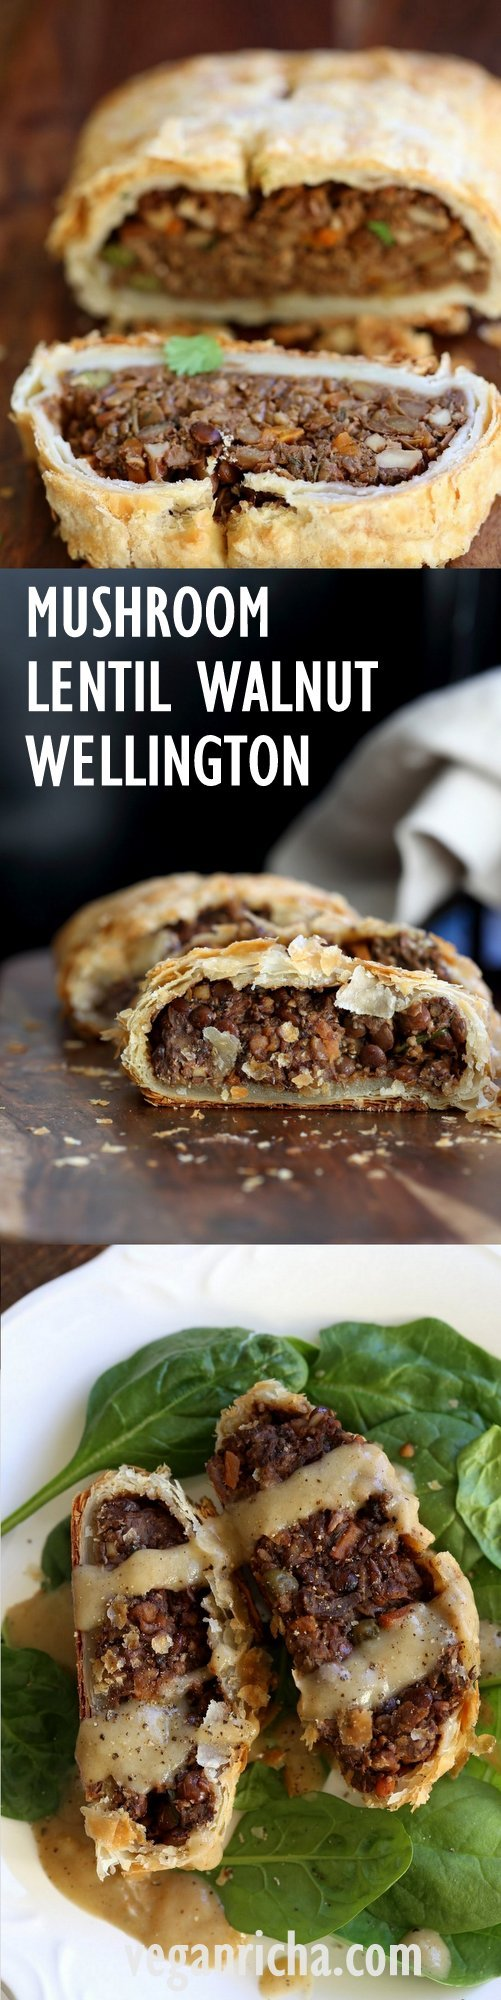 Mushroom Walnut Lentil Wellington. Easy Vegan Wellington for the Holidays and potlucks. Puff pastry wrapped lentil walnut mushroom loaf. Use pecans for variation Vegan Recipe. Make into a loaf to make gluten-free. #vegan #veganricha